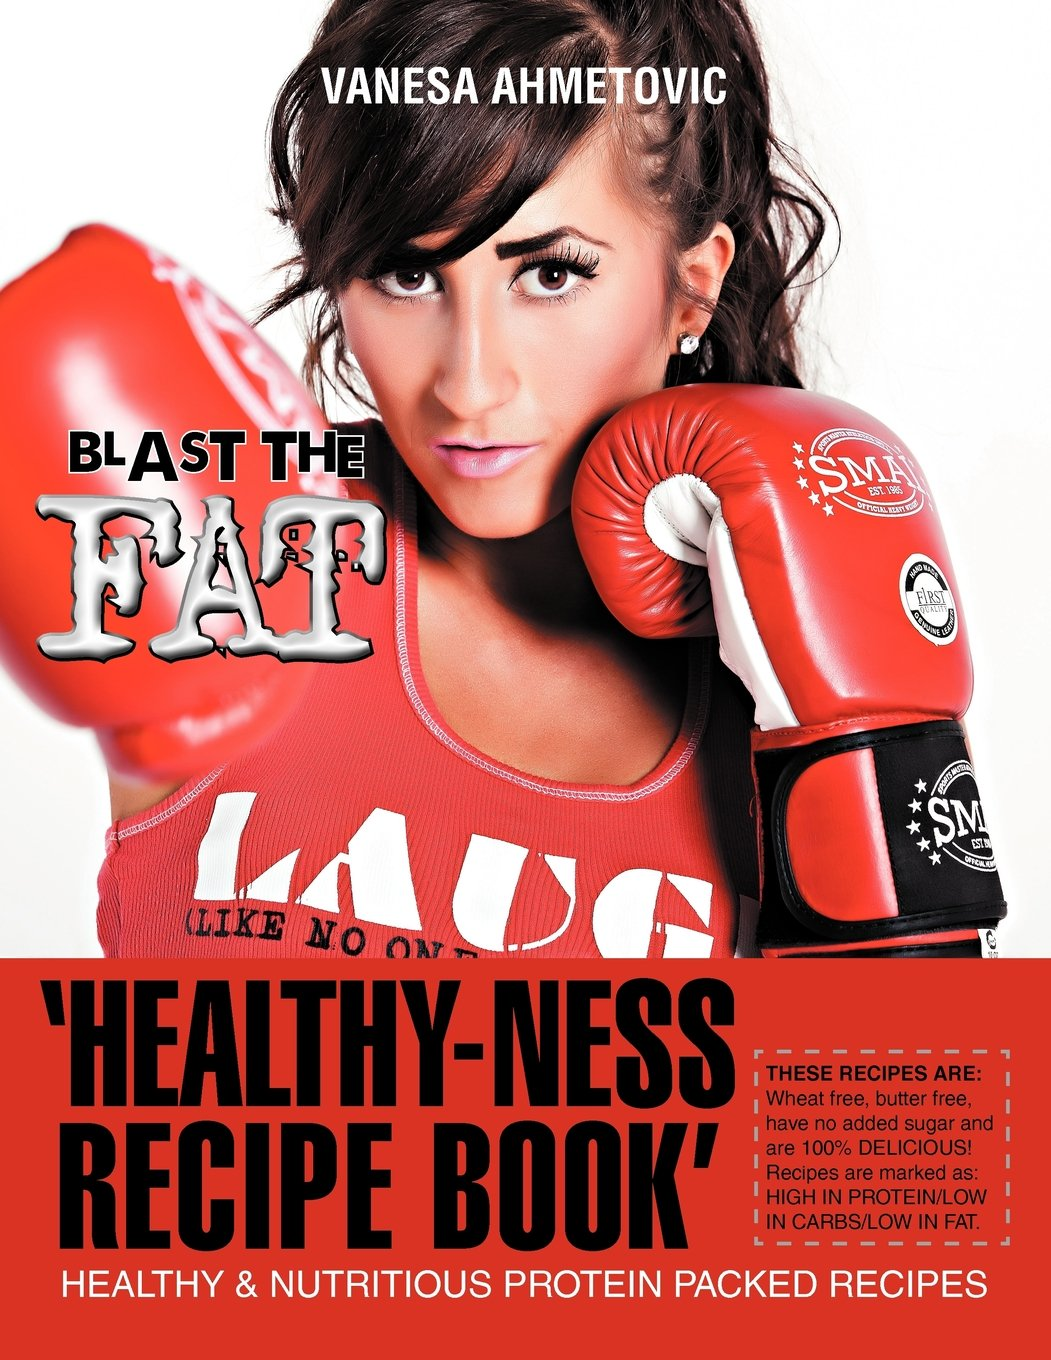 'Healthy-ness Recipe Book': Healthy & Nutritious Protein Packed Recipes PDF